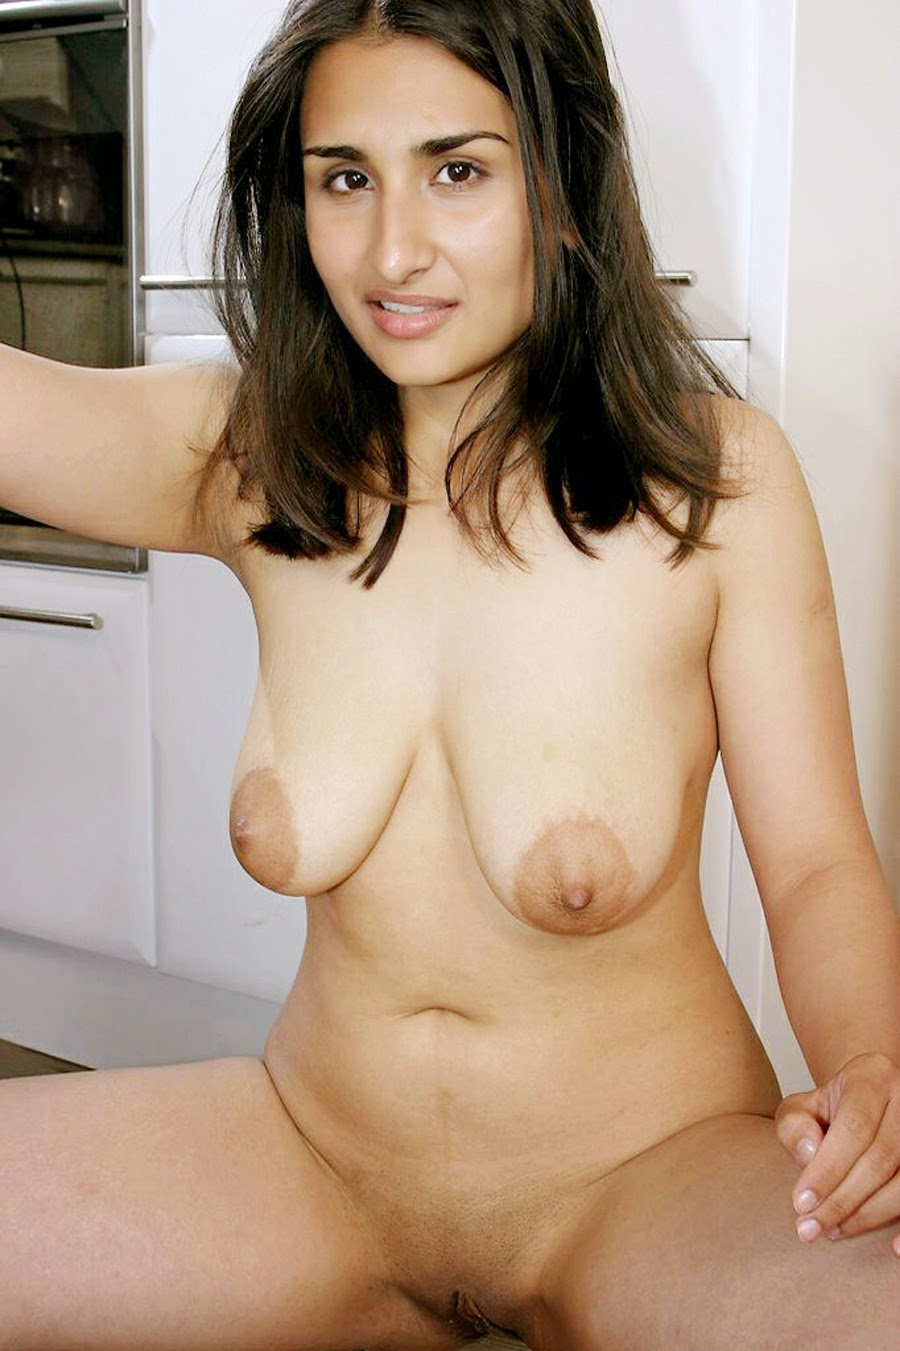 Asian blow job model